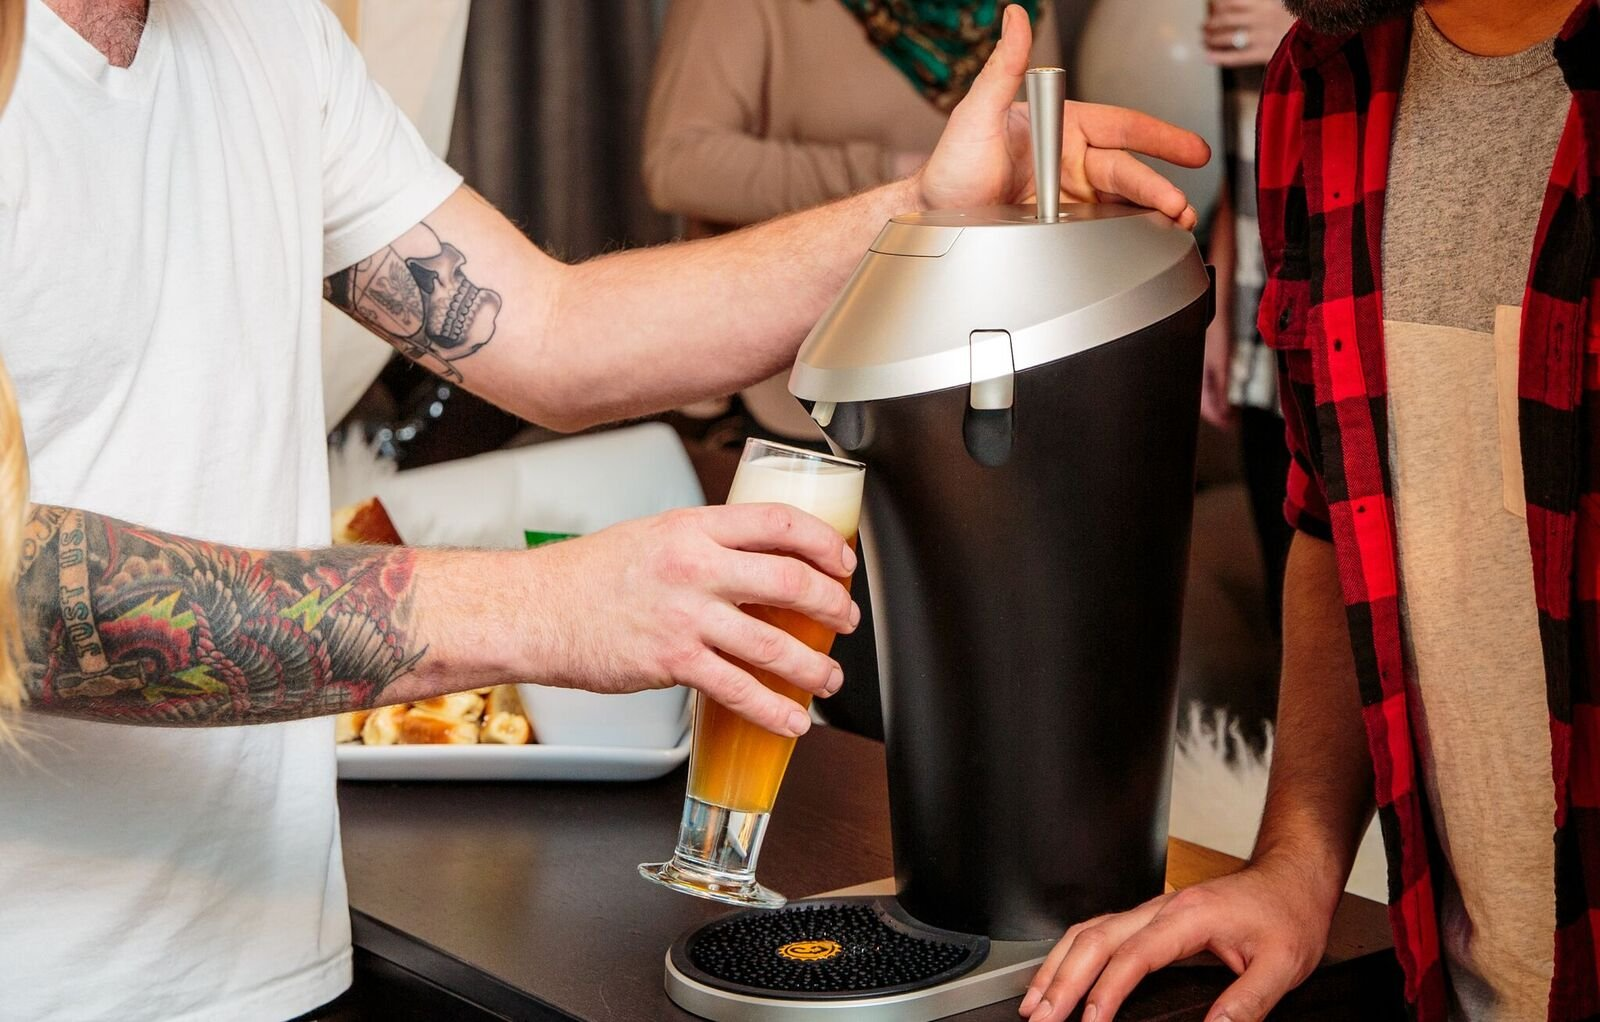 Fizzics Original Portable Beer System with Fizzics Micro-foam Technology for a Bottle to Draft Experience.